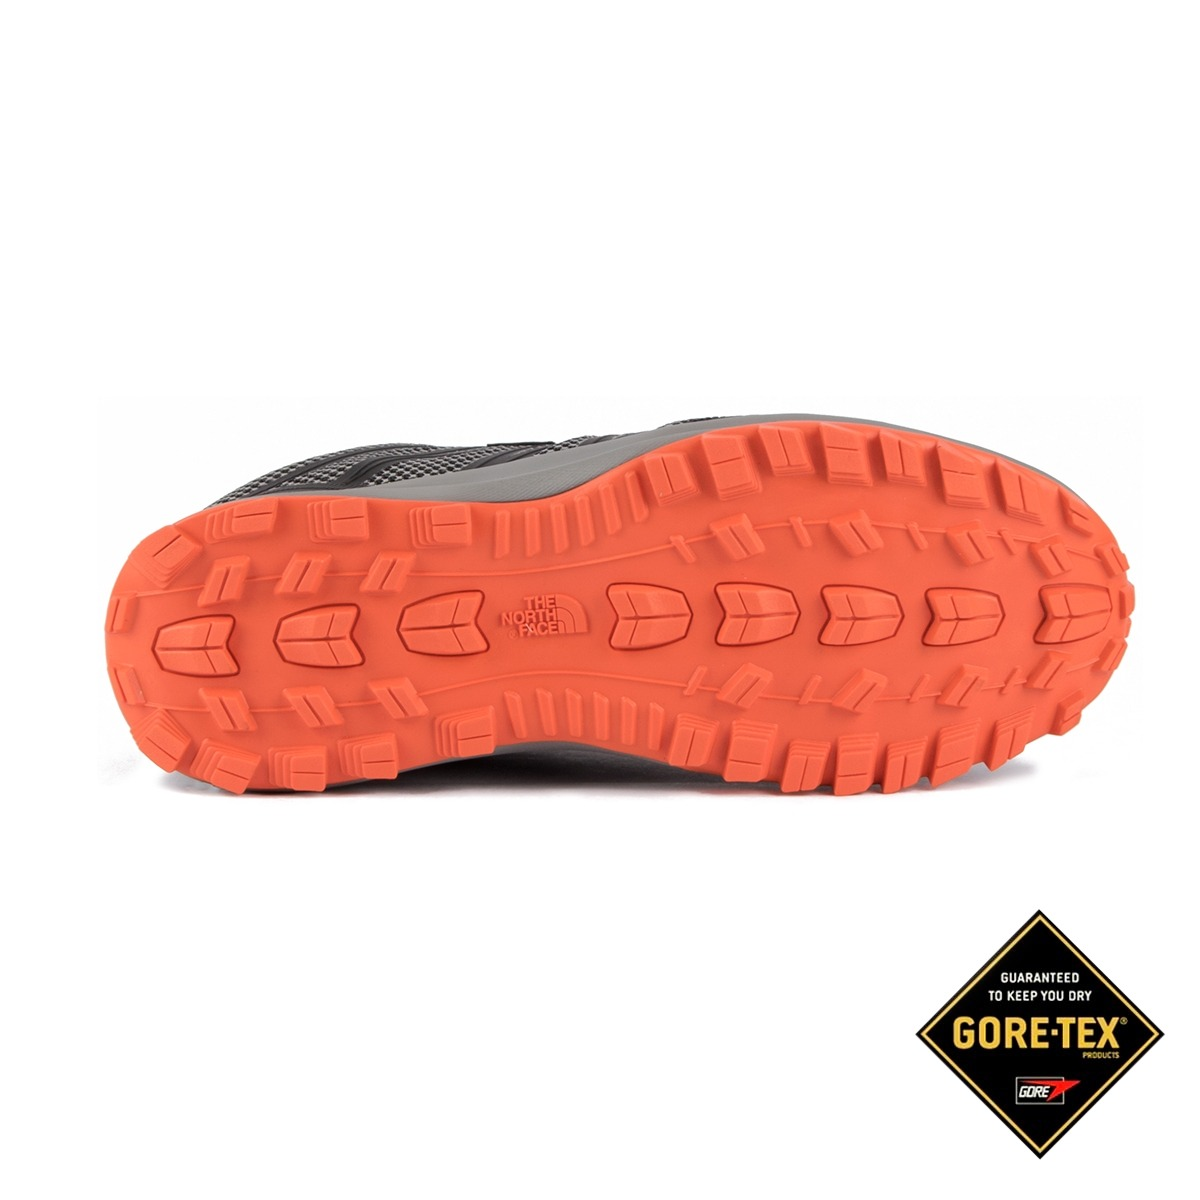 The North Face Litewave Fastpack GTX Phantom Grey Scarlet Ibis Gore-tex Hombre